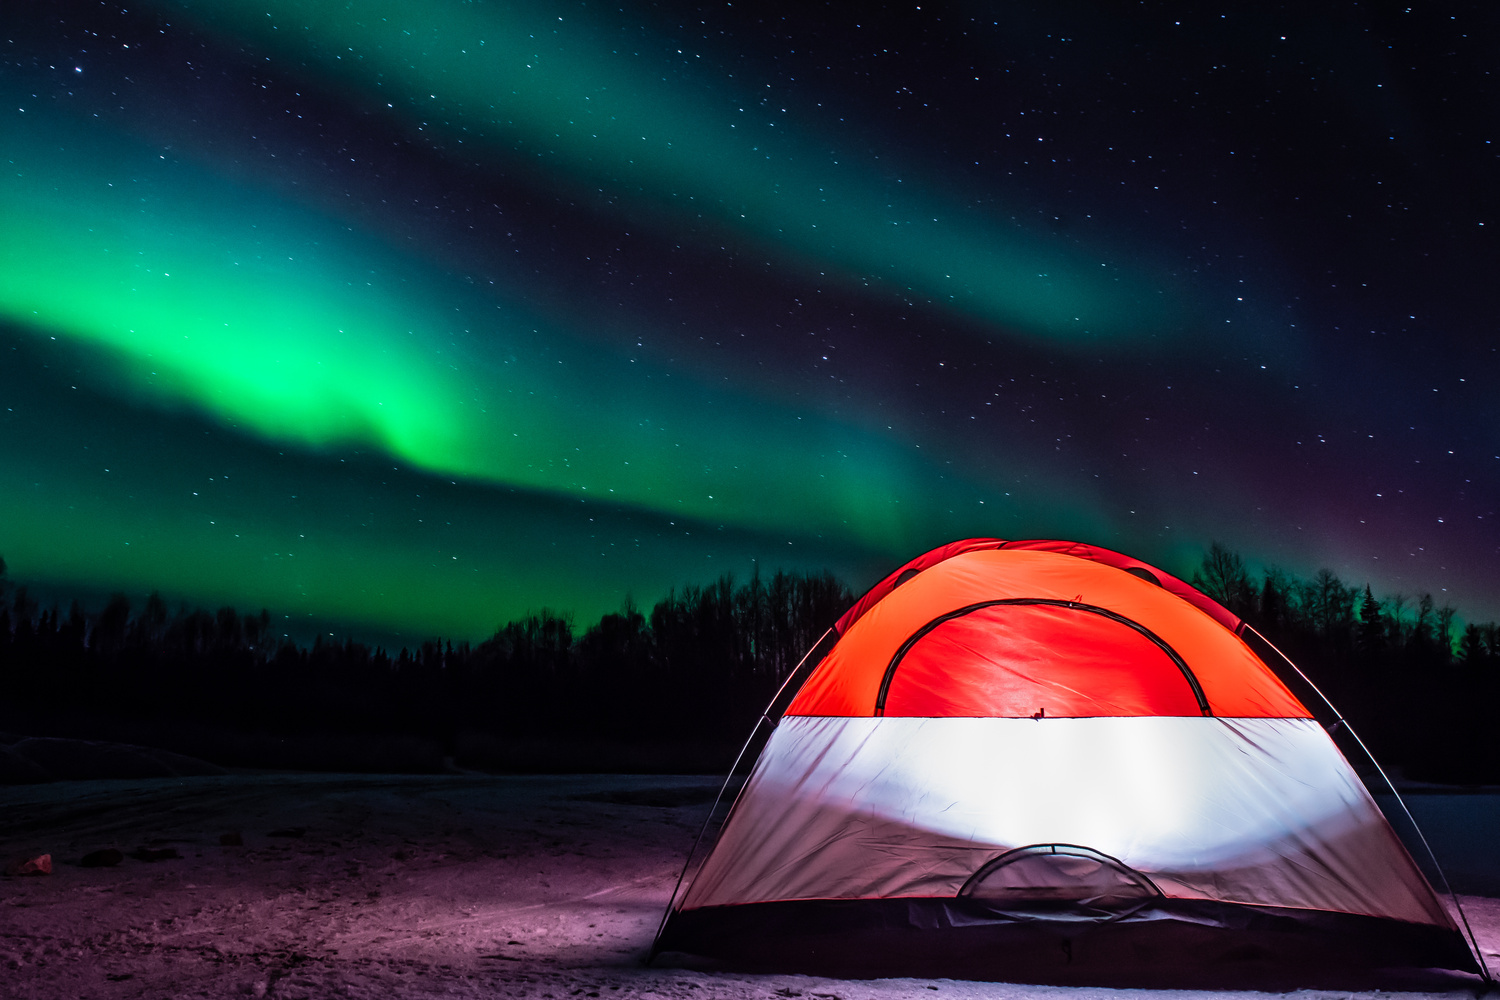 Camping under the dancing lights by Cameron Roxberry